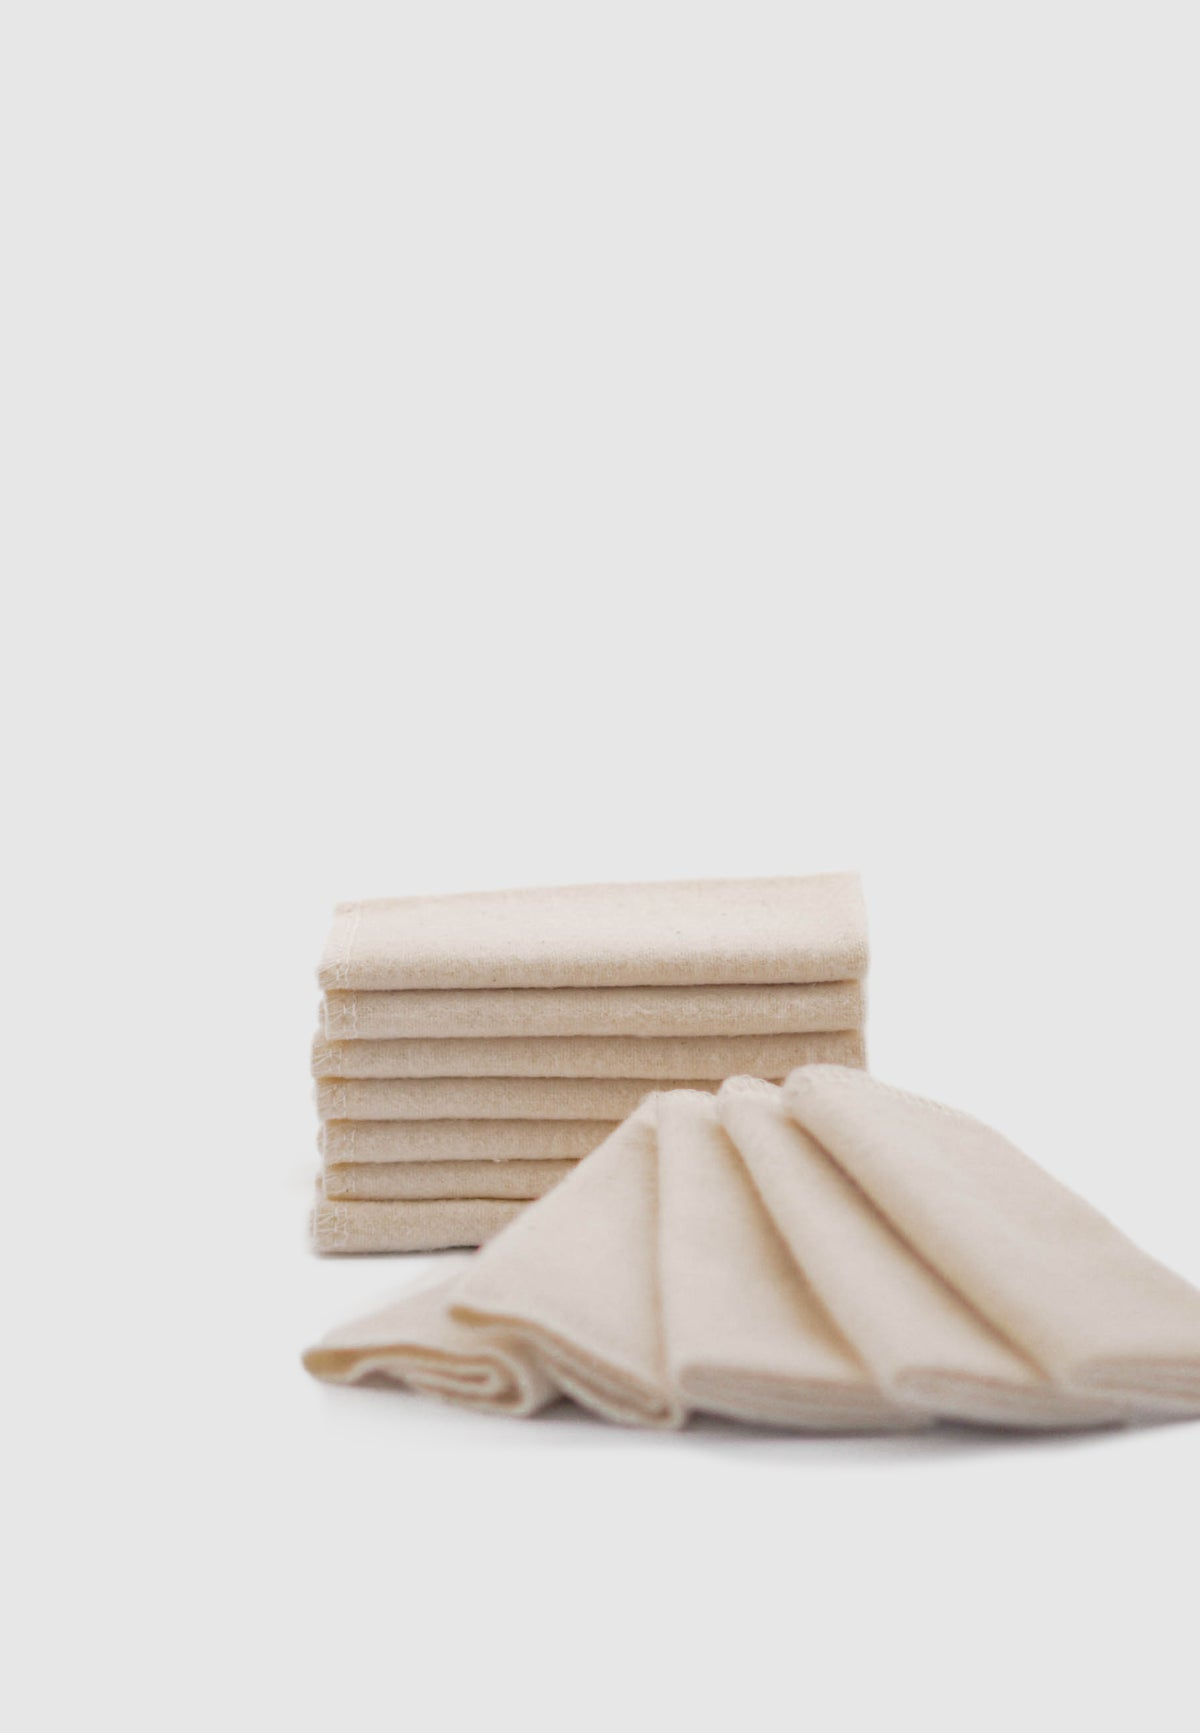 Handmade, Organic Cotton All-Purpose Cloths – Set of 12